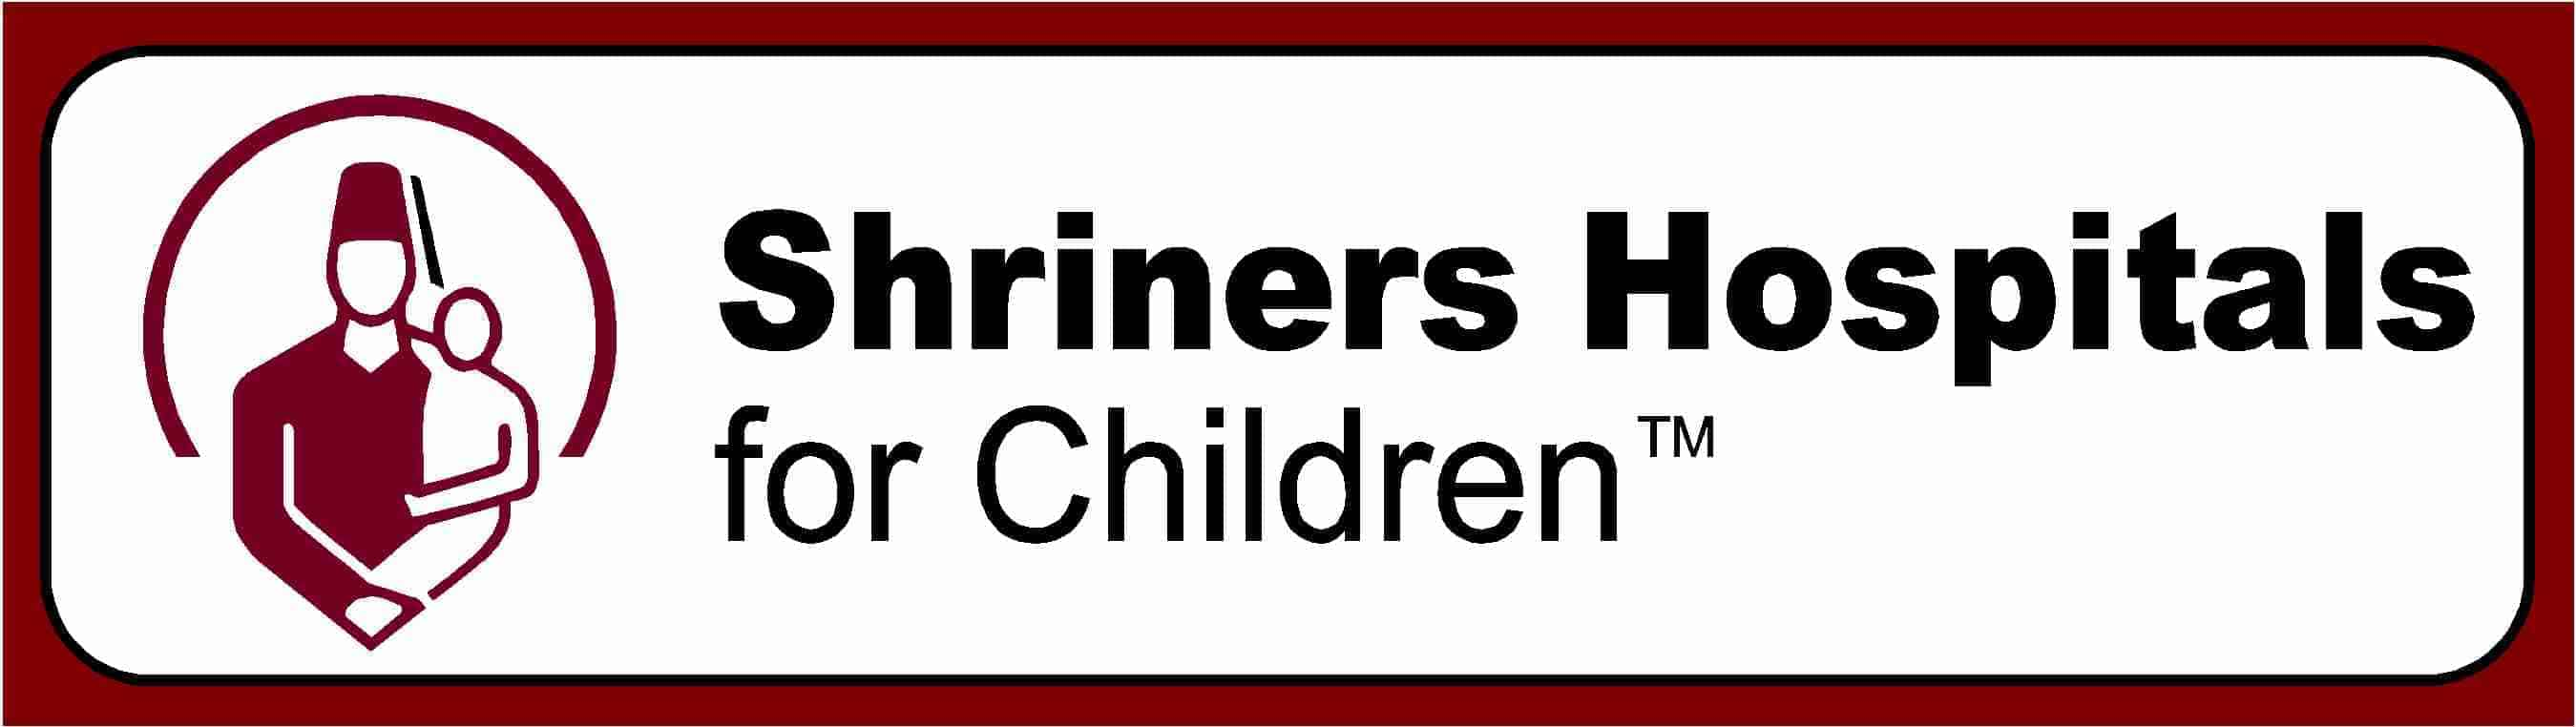 Shriners Children's Hospital logo